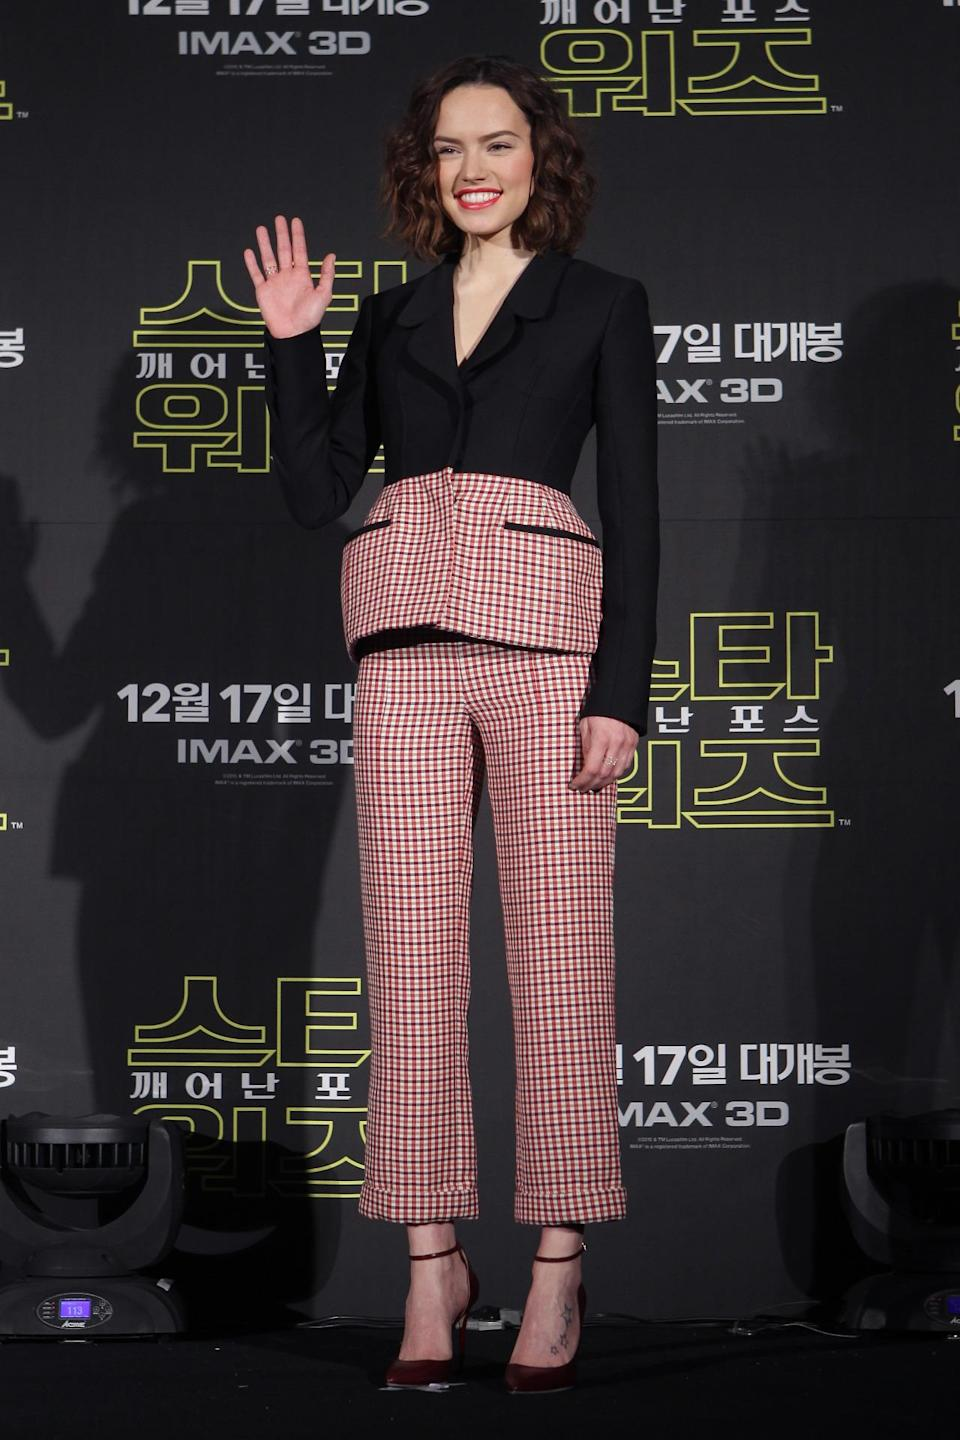 <p>While Nyong'o was in Mexico City, the rest of the cast was promoting their new film in Seoul. Ridley wore a sophisticated suit from Dior's resort 2016 collection, with burgundy pumps and bright lipstick. </p><p><i>Photo: Getty Images</i></p>